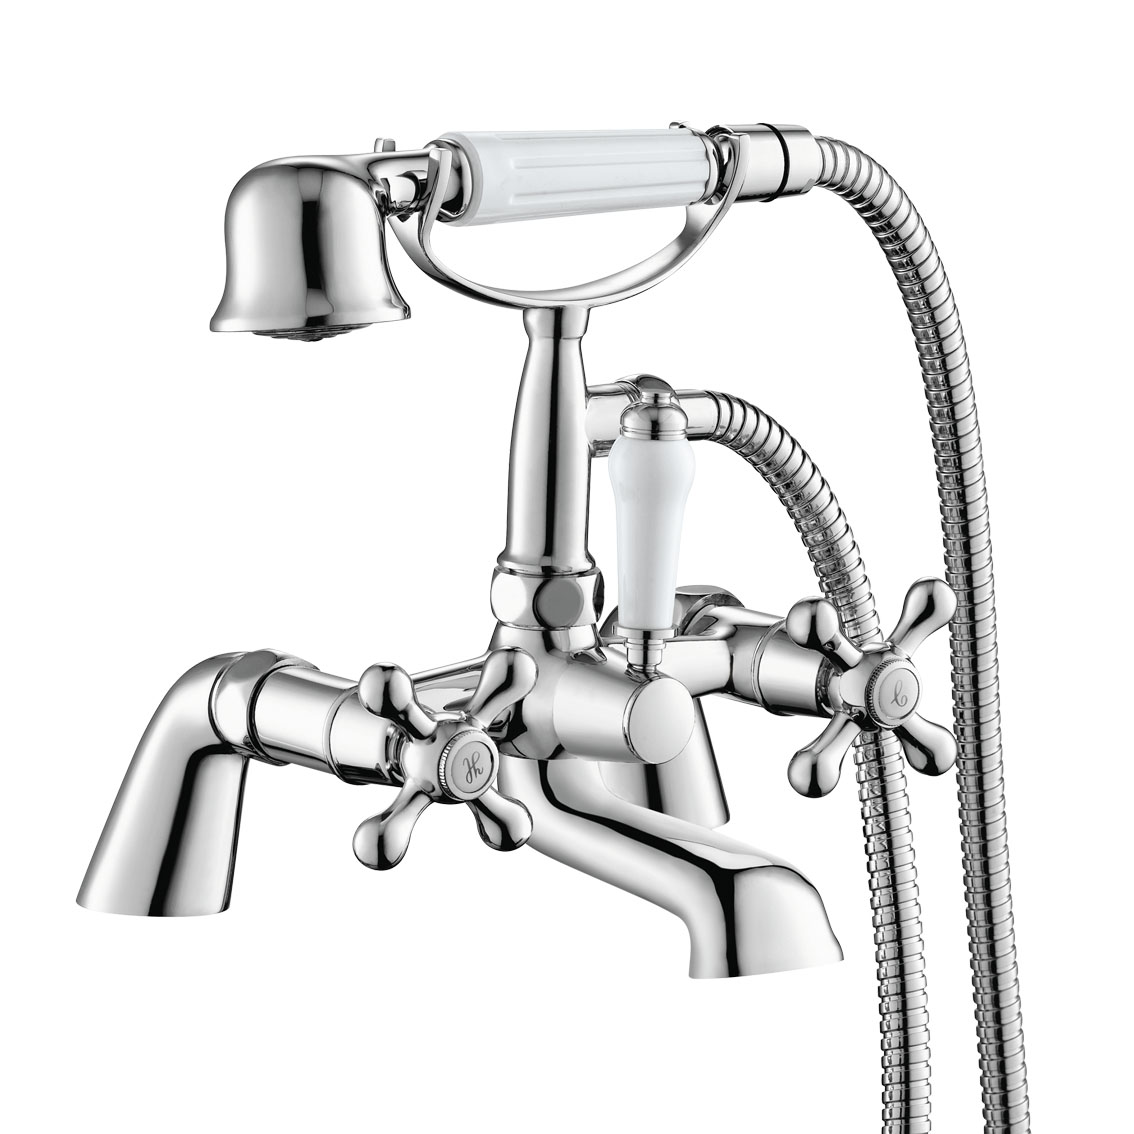 traditional bath filler tap hand held shower head